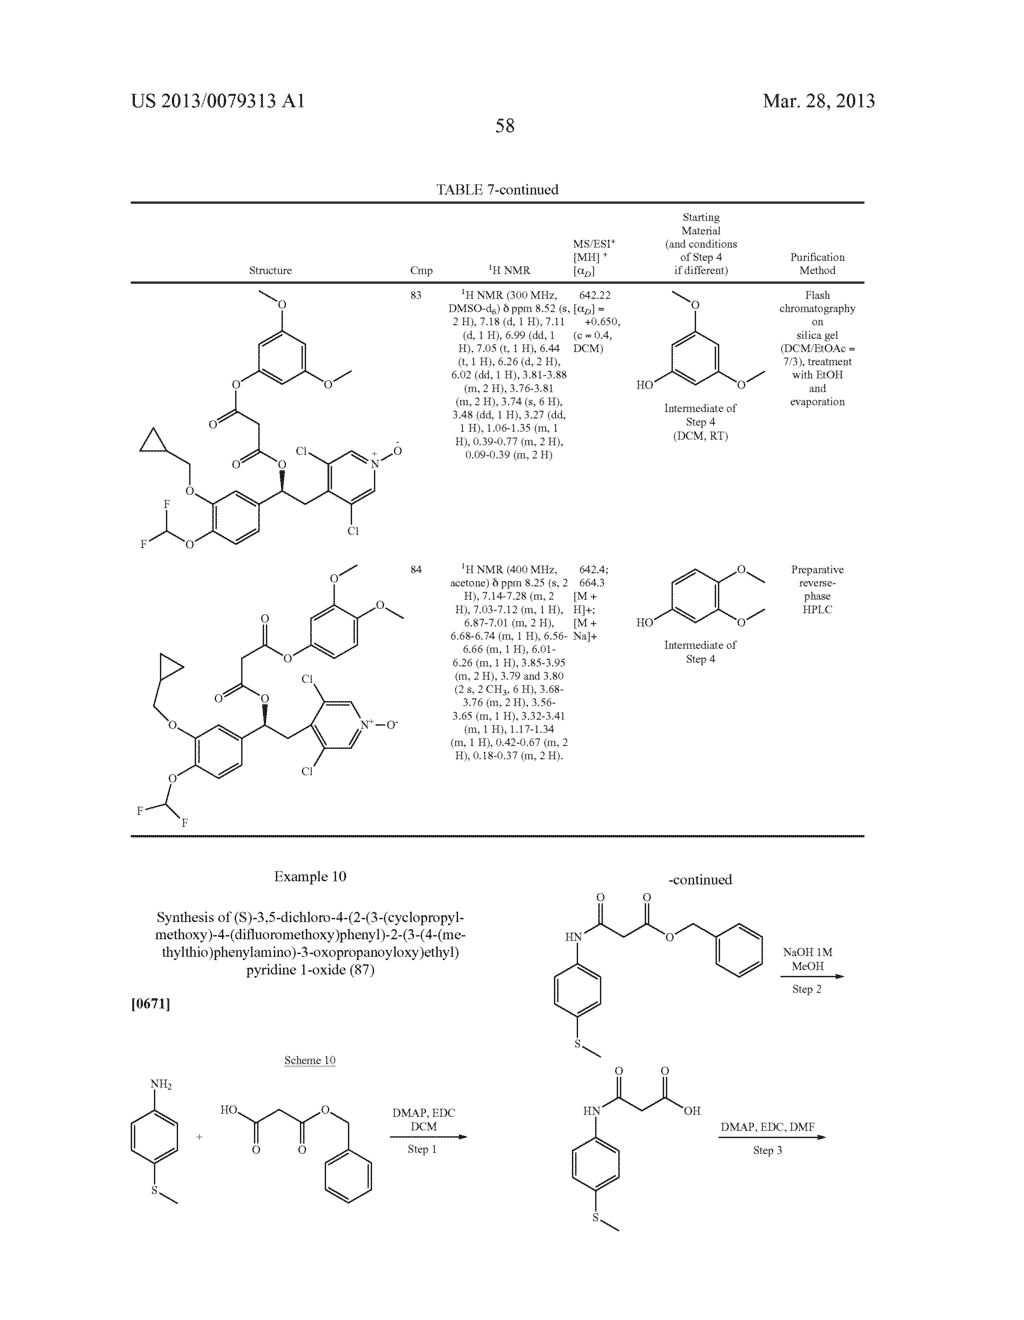 DERIVATIVES OF 1-PHENYL-2-PYRIDINYL ALKYL ALCOHOLS AS PHOSPHODIESTERASE     INHIBITORS - diagram, schematic, and image 59